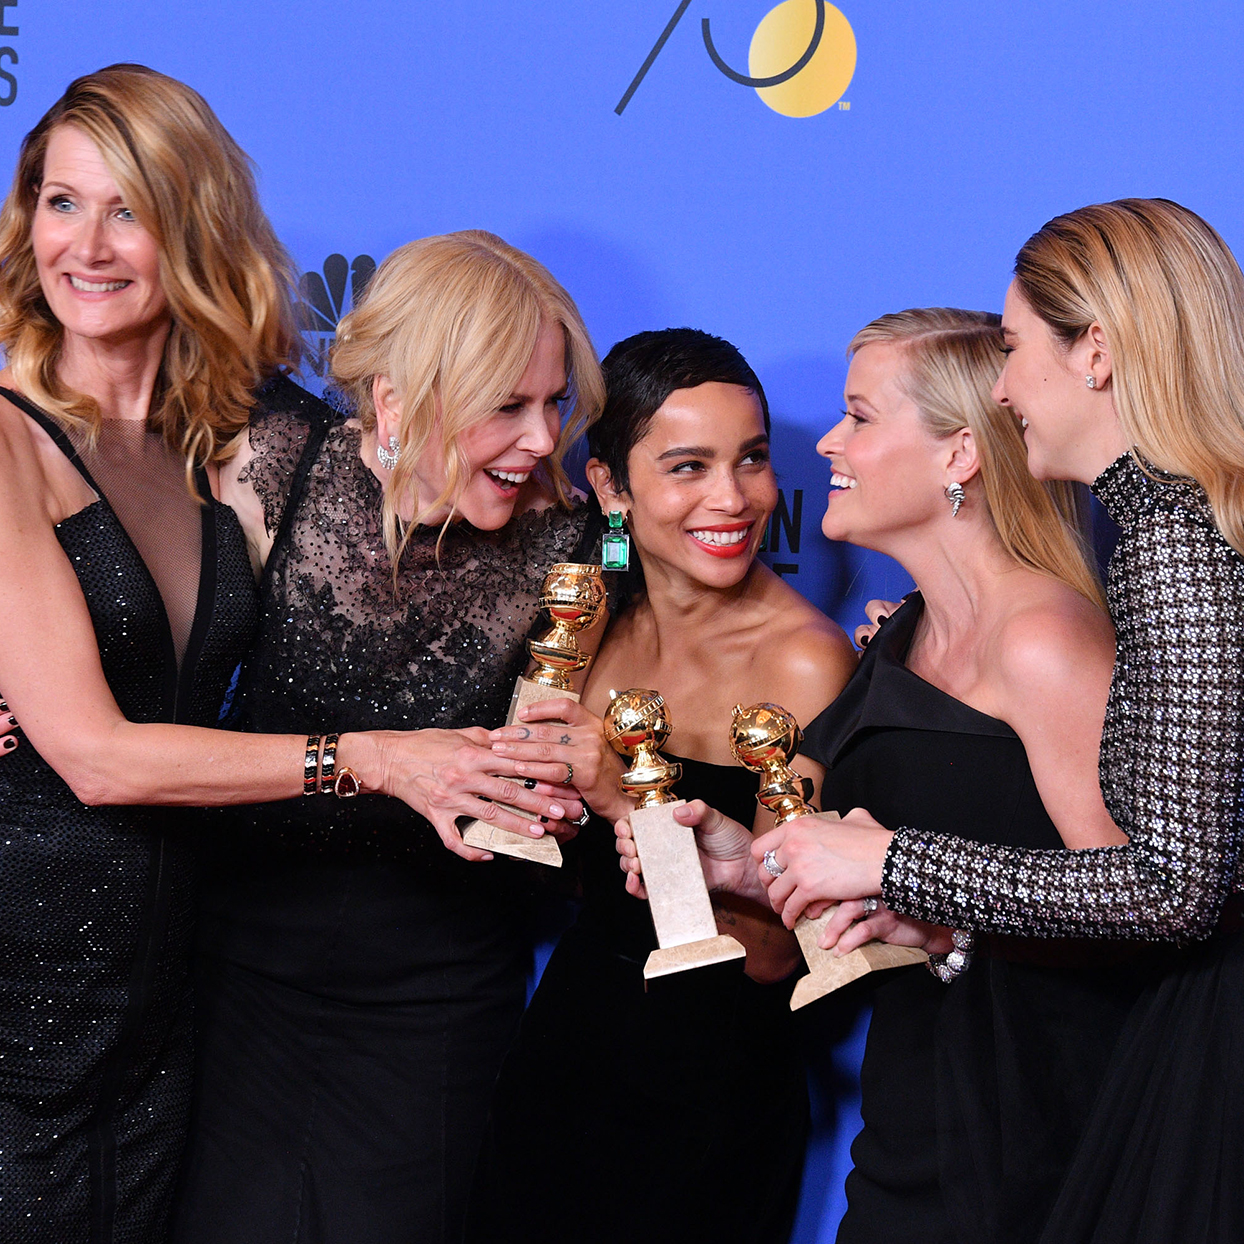 Actors Laura Dern, Nicole Kidman, Zoe Kravitz, Reese Witherspoon and Shailene Woodley of 'Big Little Lies,' winner of the award for Best Television Limited Series or Motion Picture Made for Television, pose in the press room during The 75th Annual Golden Globe Awards at The Beverly Hilton Hotel on January 7, 2018 in Beverly Hills, California